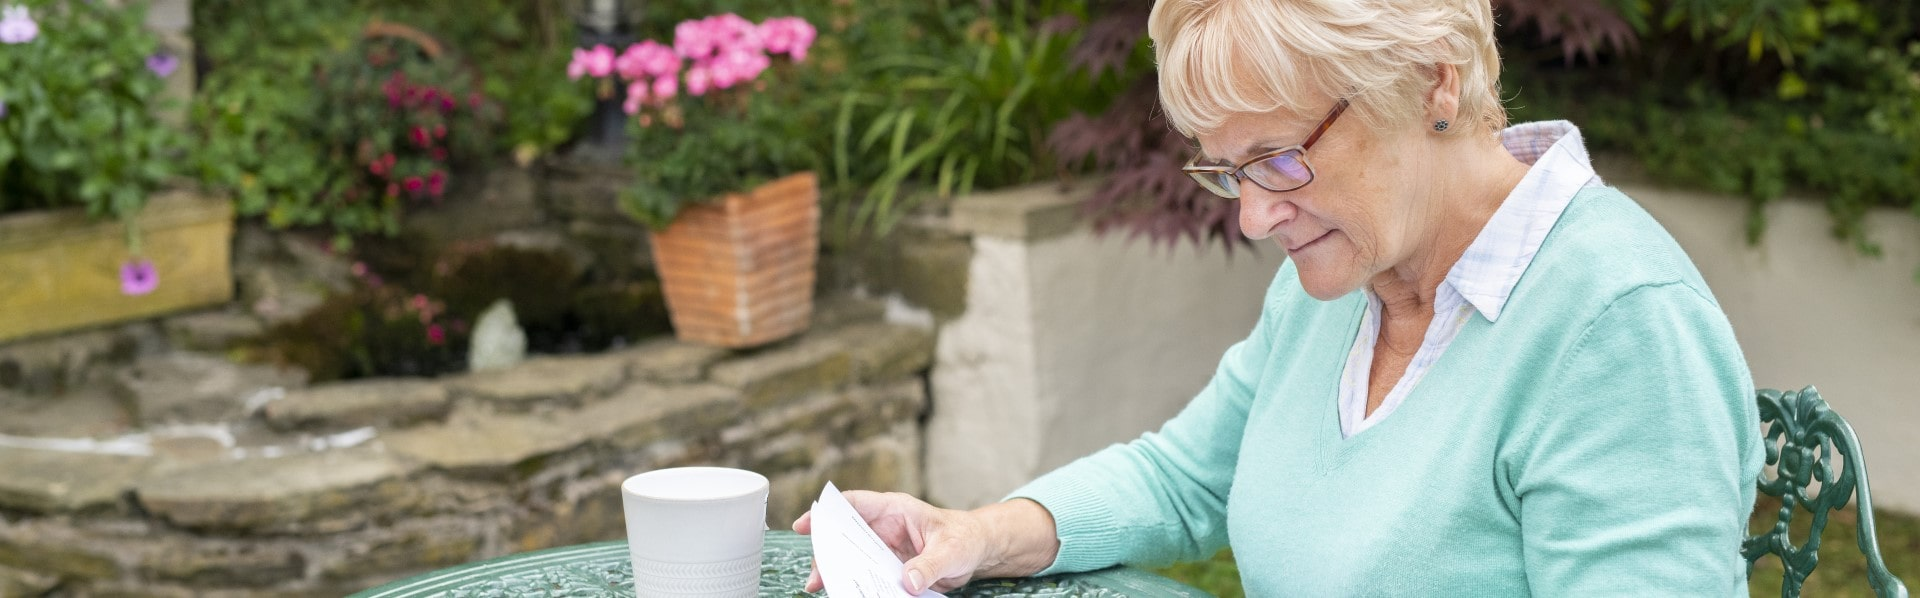 Woman looking at bills in her garden